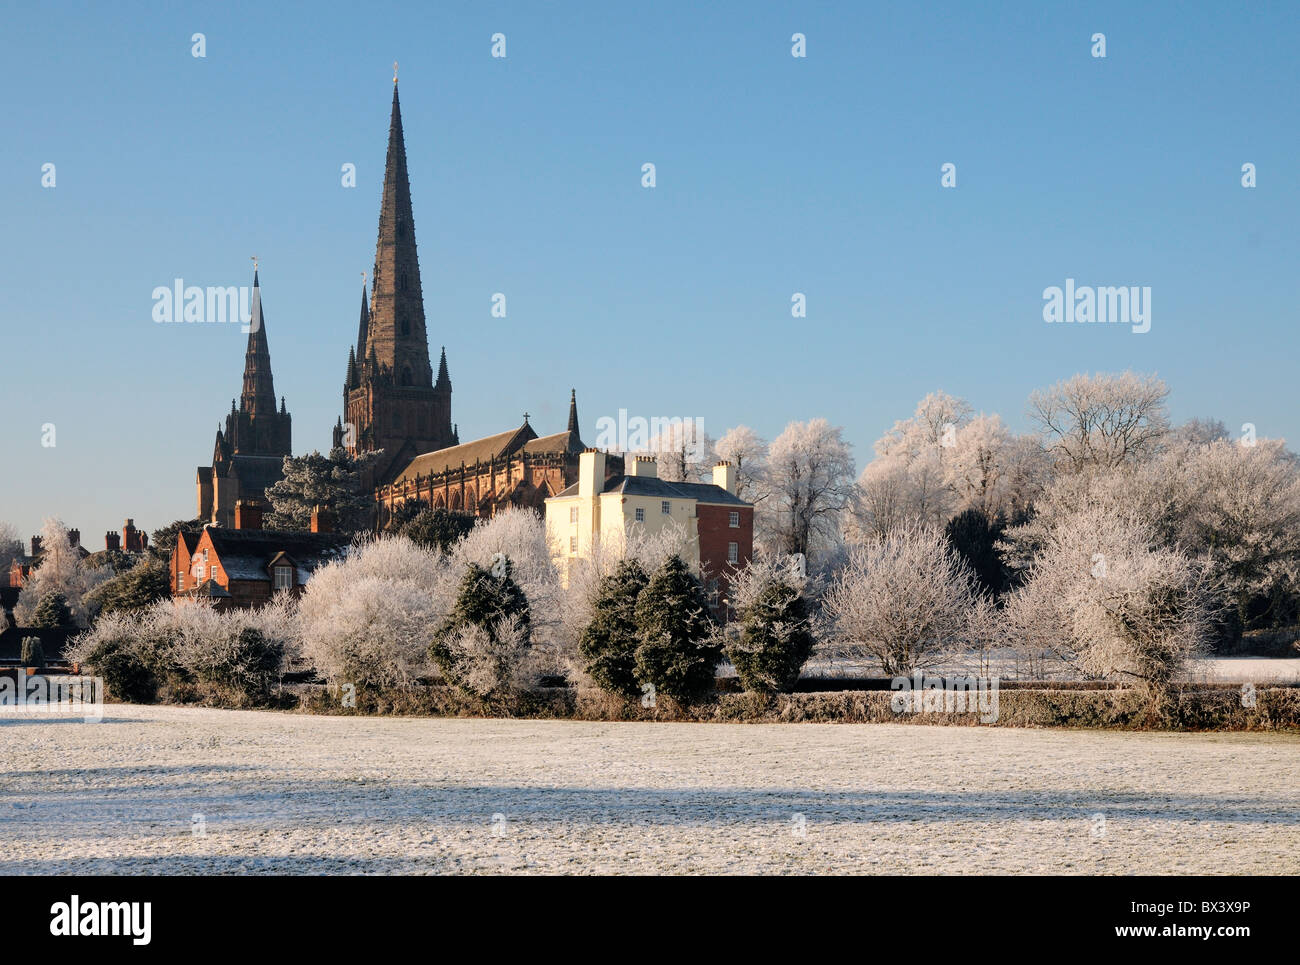 Lichfield Cathedral spires seen fro Stowe Fields under snow with hoar frost on trees and winter snow on ground under - Stock Image